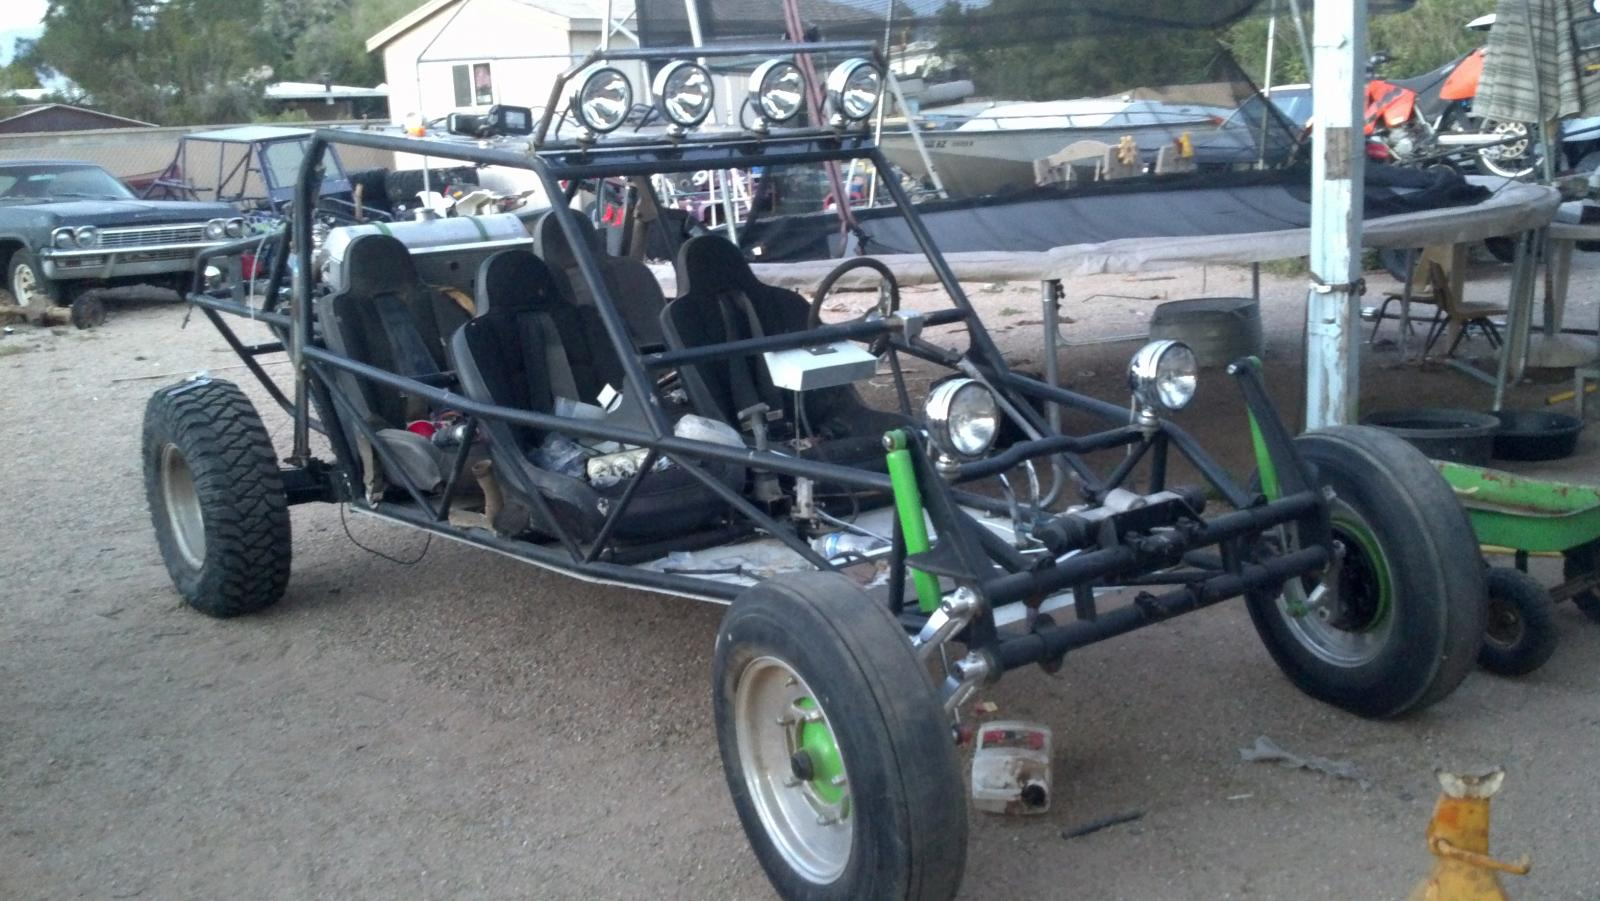 TheSamba.com :: HBB Off-Road - View topic - Show off your Dune Buggy ...